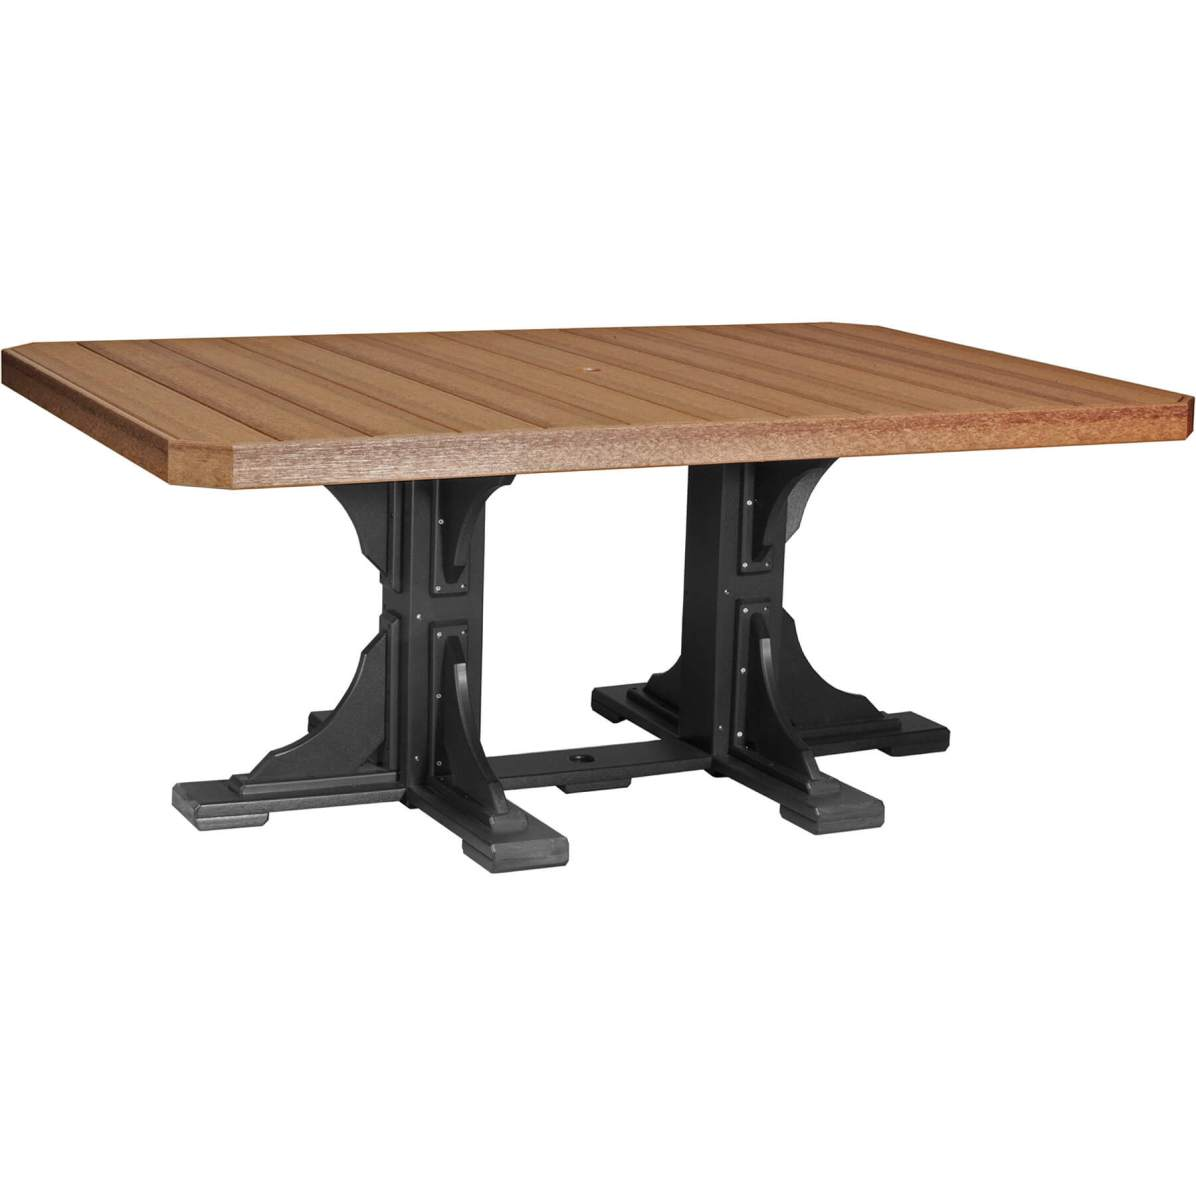 P46RTAMB Poly 4' x 6' Rectangular Table (Antique Mahogany & Black) Dining Height